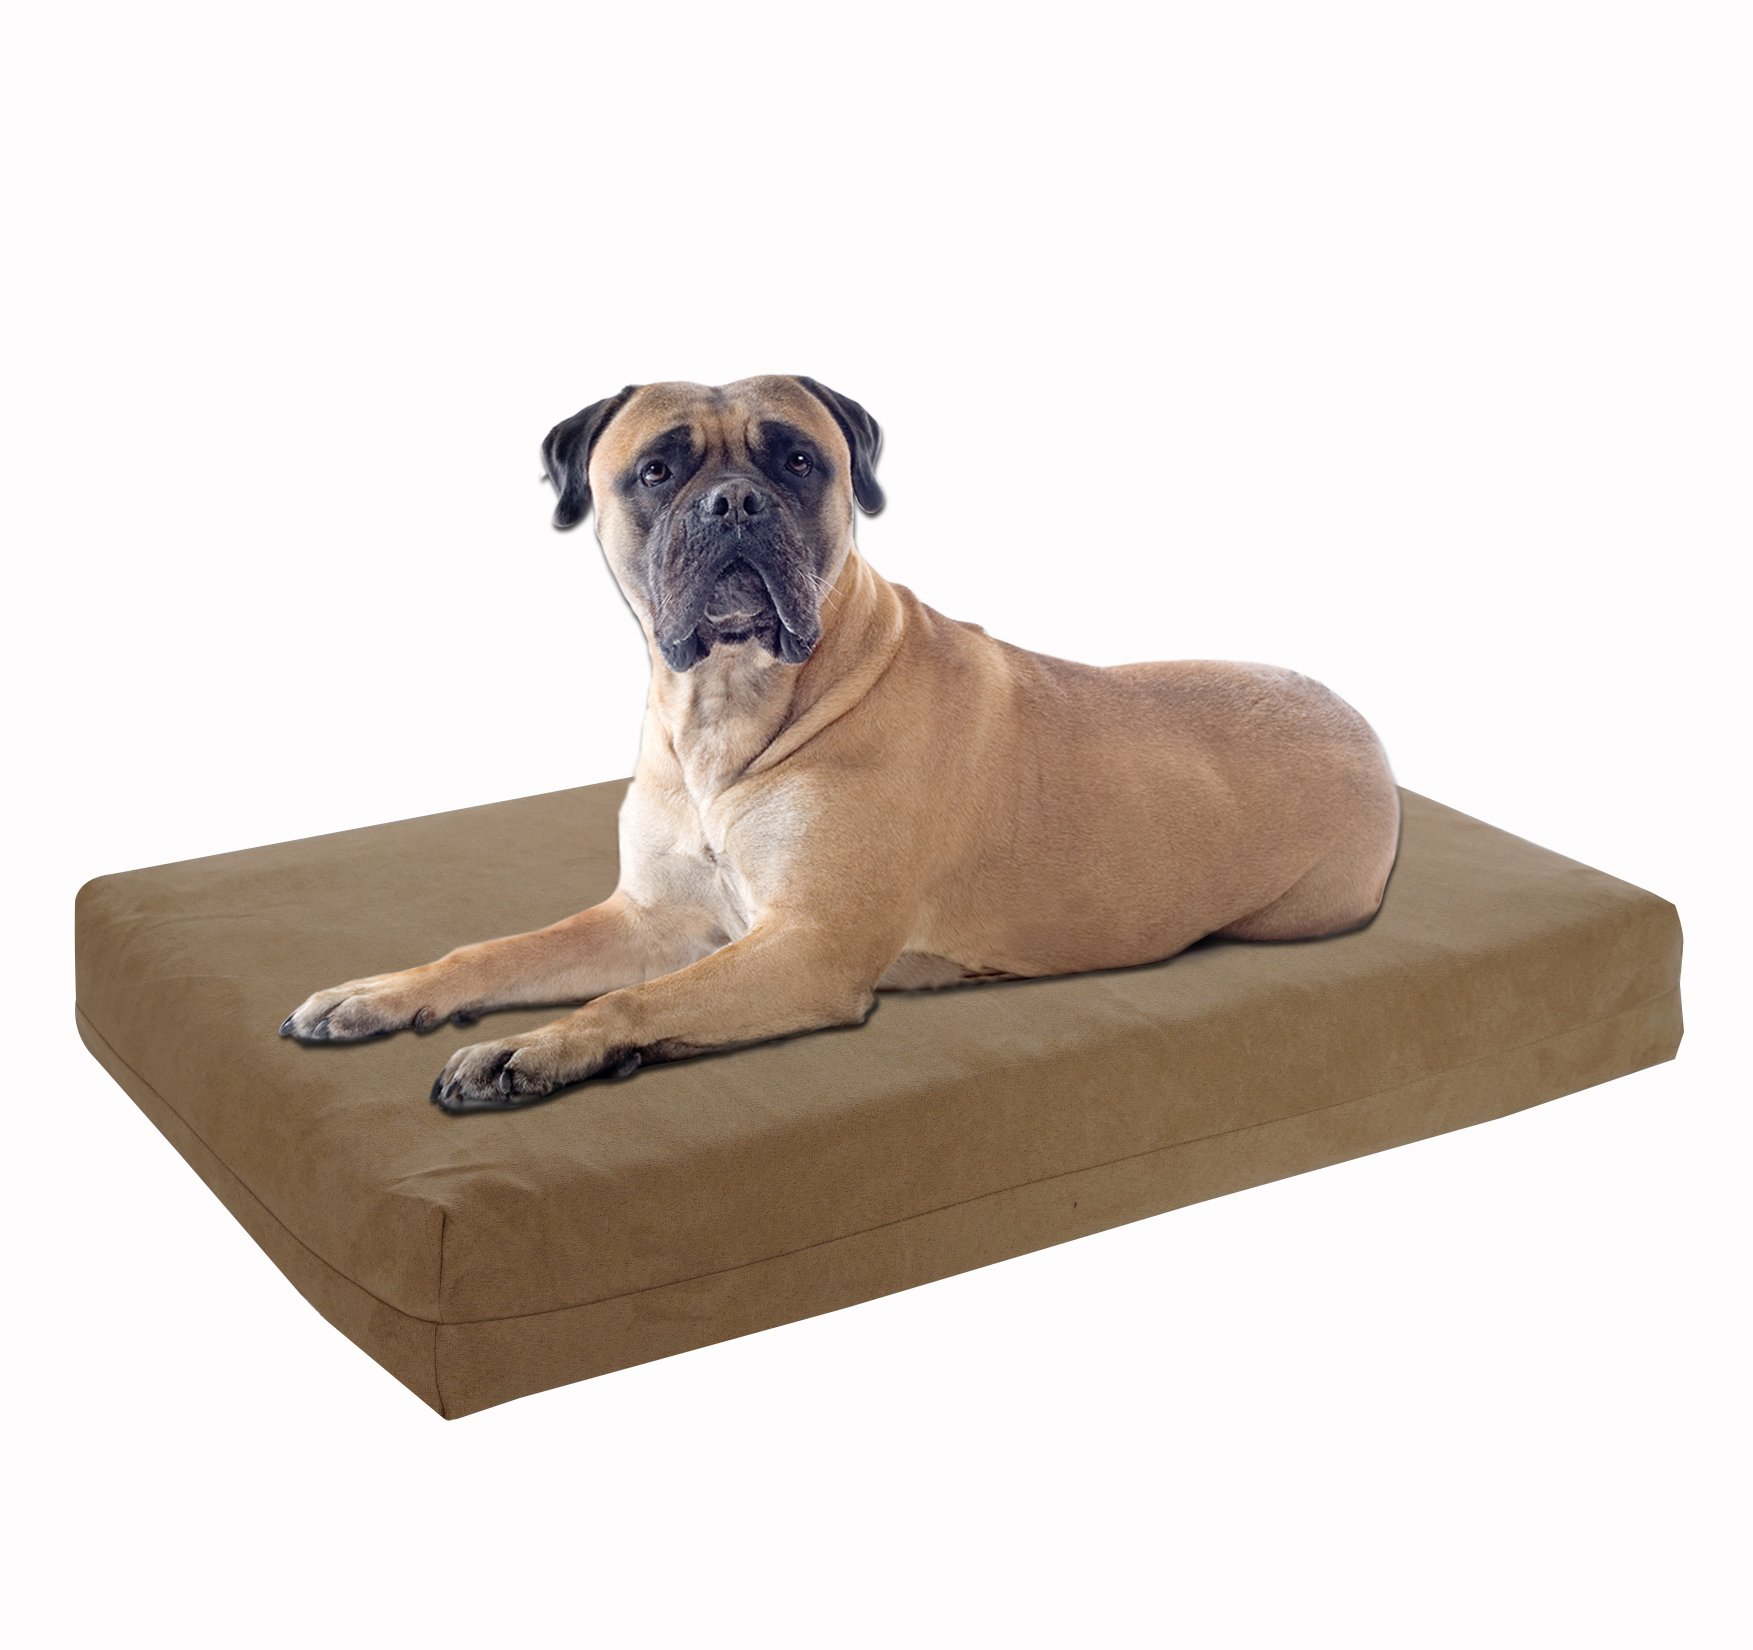 Pet Support Systems Orthopedic Memory Foam Dog Beds - Eco Friendly, Hypoallergenic and Made in The USA, Supreme Luxury Comfort and Care for Dogs with Removable and Washable Cover by Back Support Systems